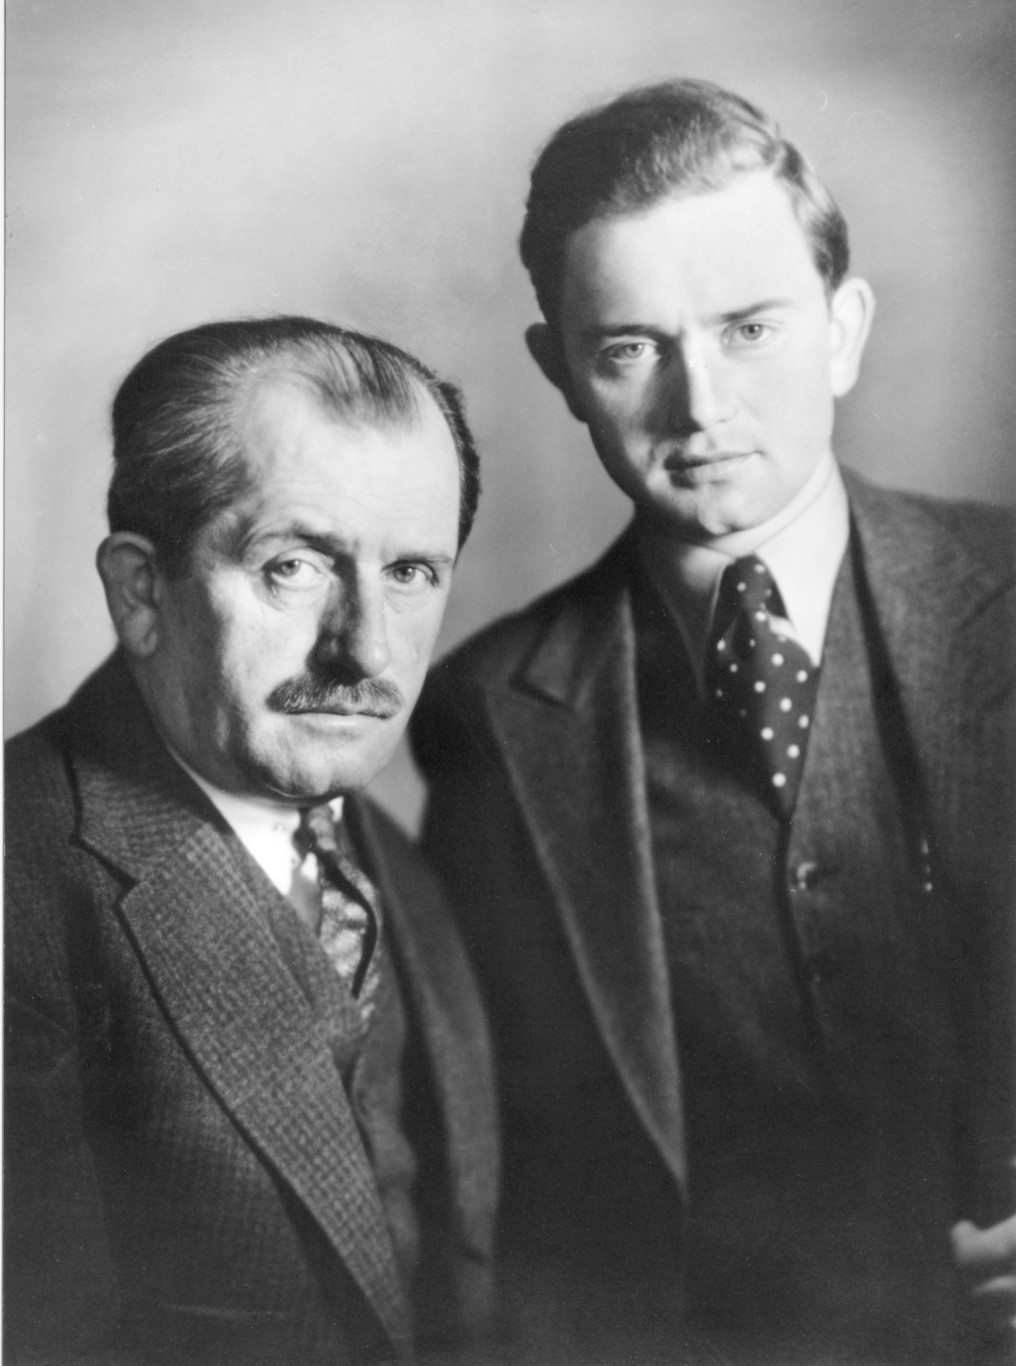 Ferdinand Porsche and his son Ferry Porsche